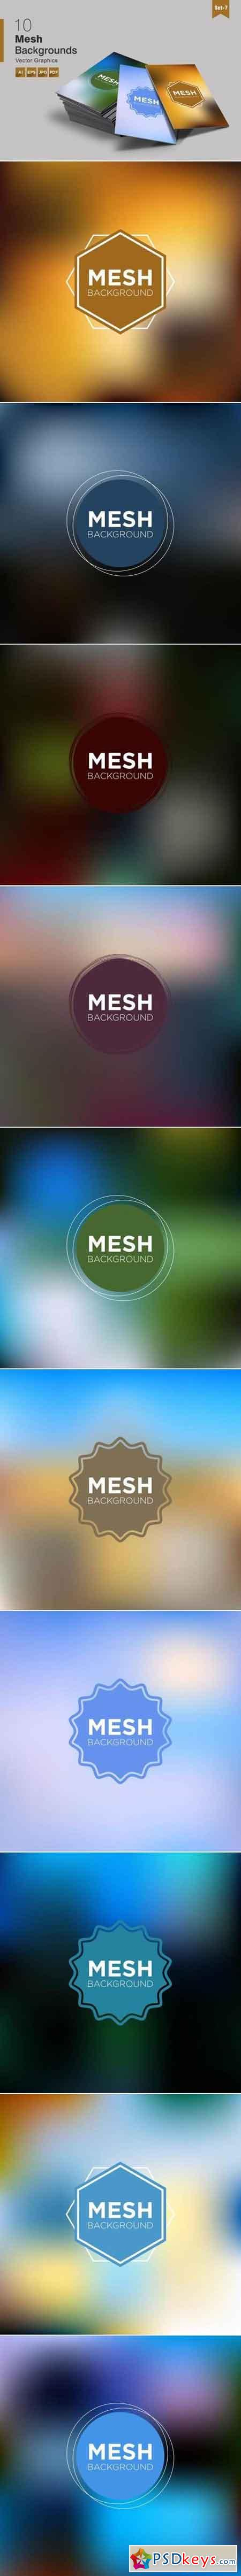 10 Mesh Abstract Backgrounds